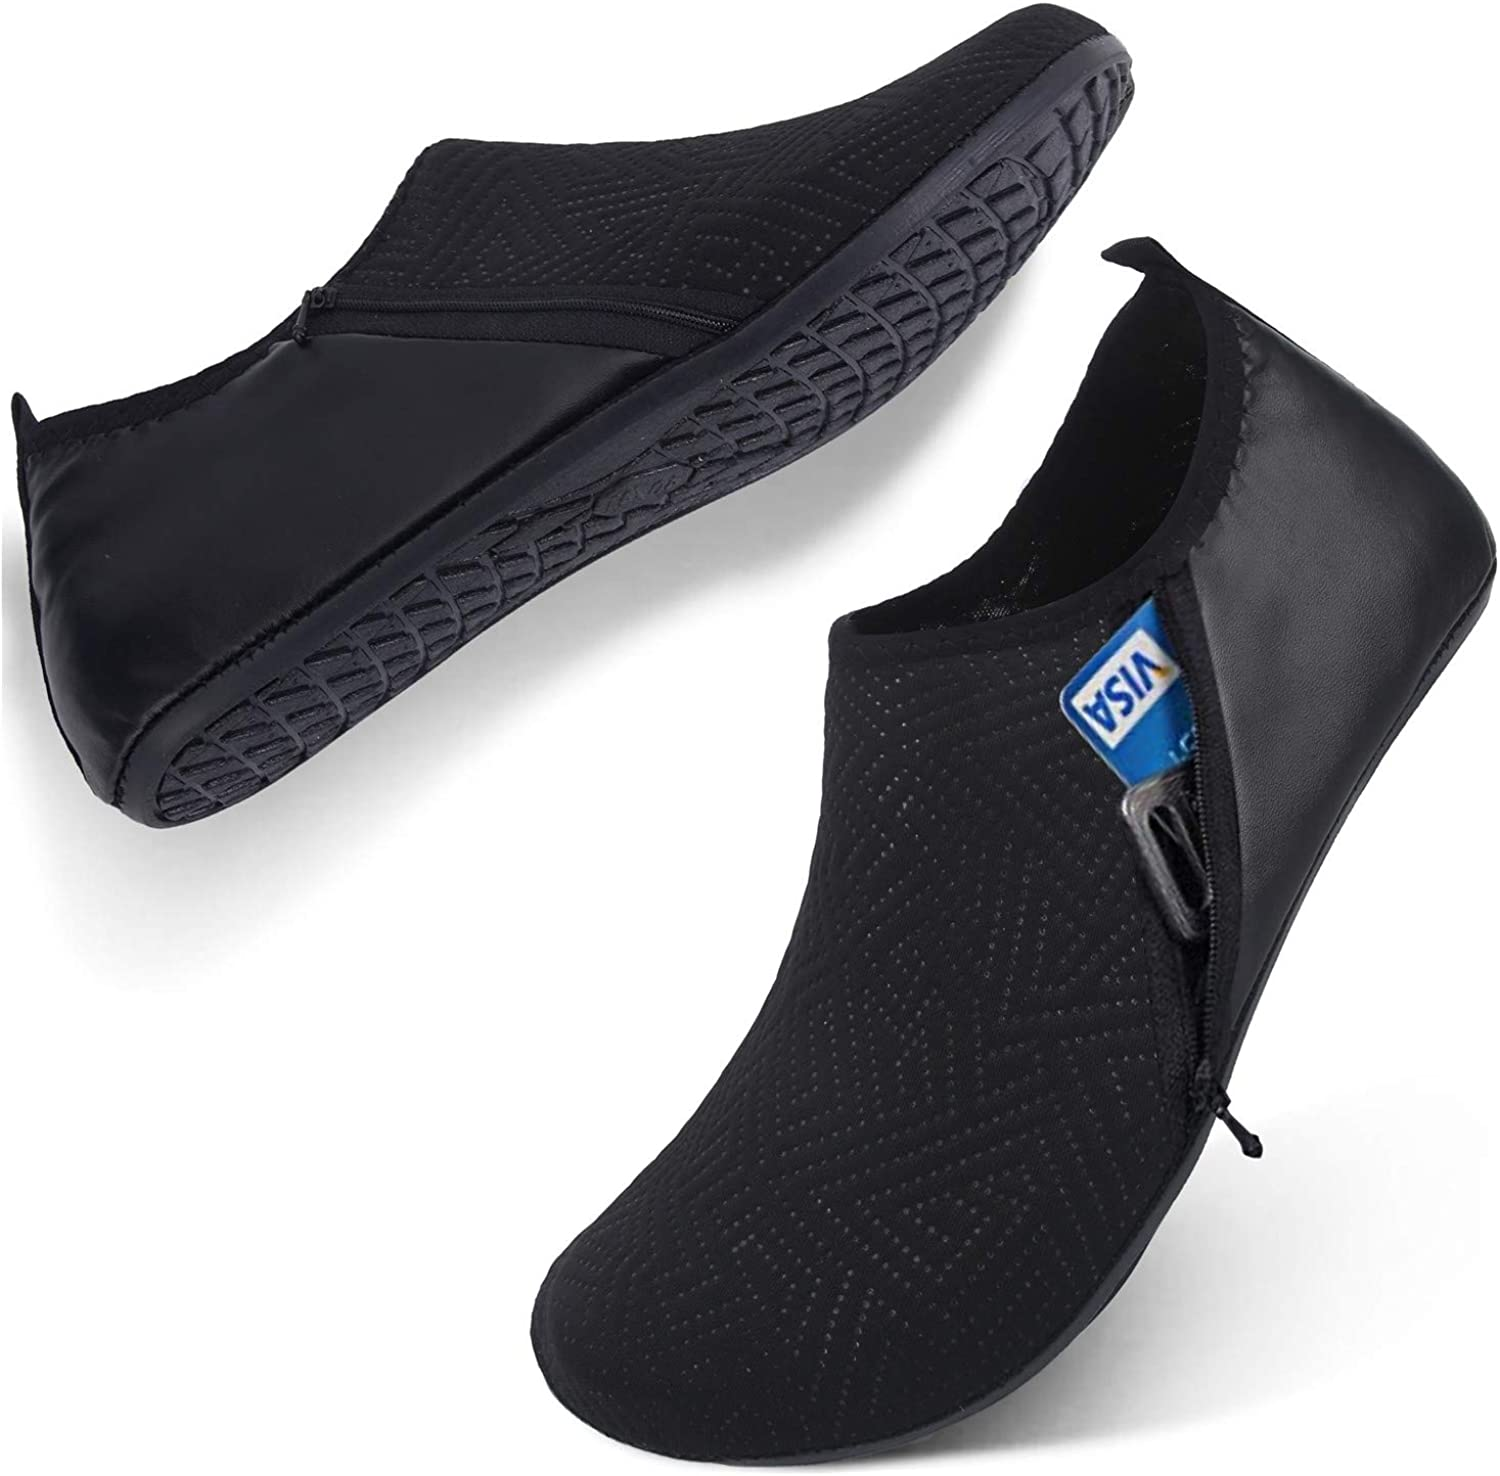 Mens Water Shoes Swim Shoes Quick-Dry Beach Barefoot Surf Yoga Boat Sneakers